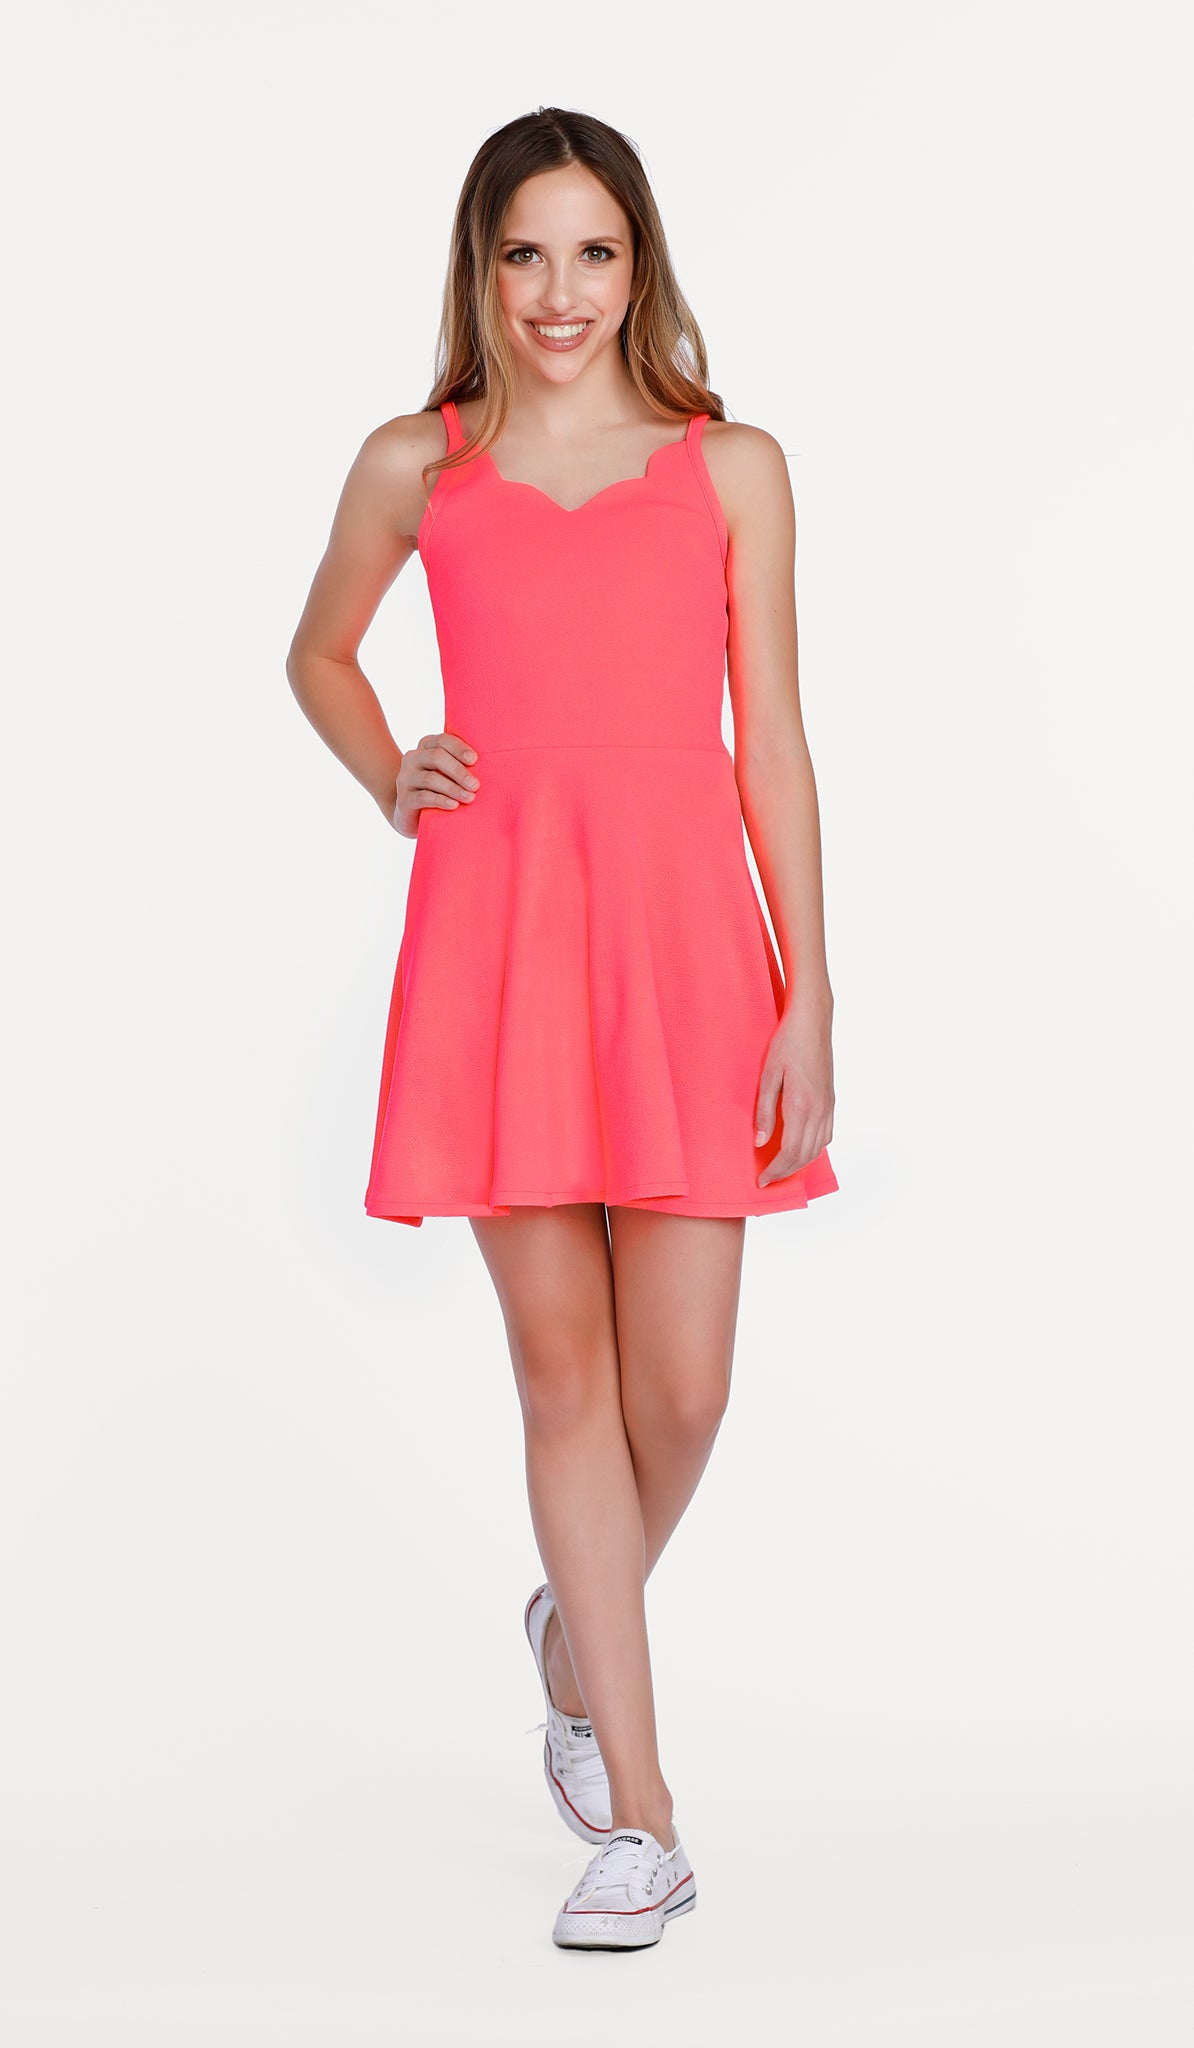 THE LAYNIE DRESS - Sallymiller.com - [variant title] - | Event & Party Dresses for Tween Girls & Juniors | Weddings Dresses, Bat Mitzvah Dresses, Sweet Sixteen Dresses, Graduation Dresses, Birthday Party Dresses, Bar Mitzvah Dresses, Cotillion Dresses